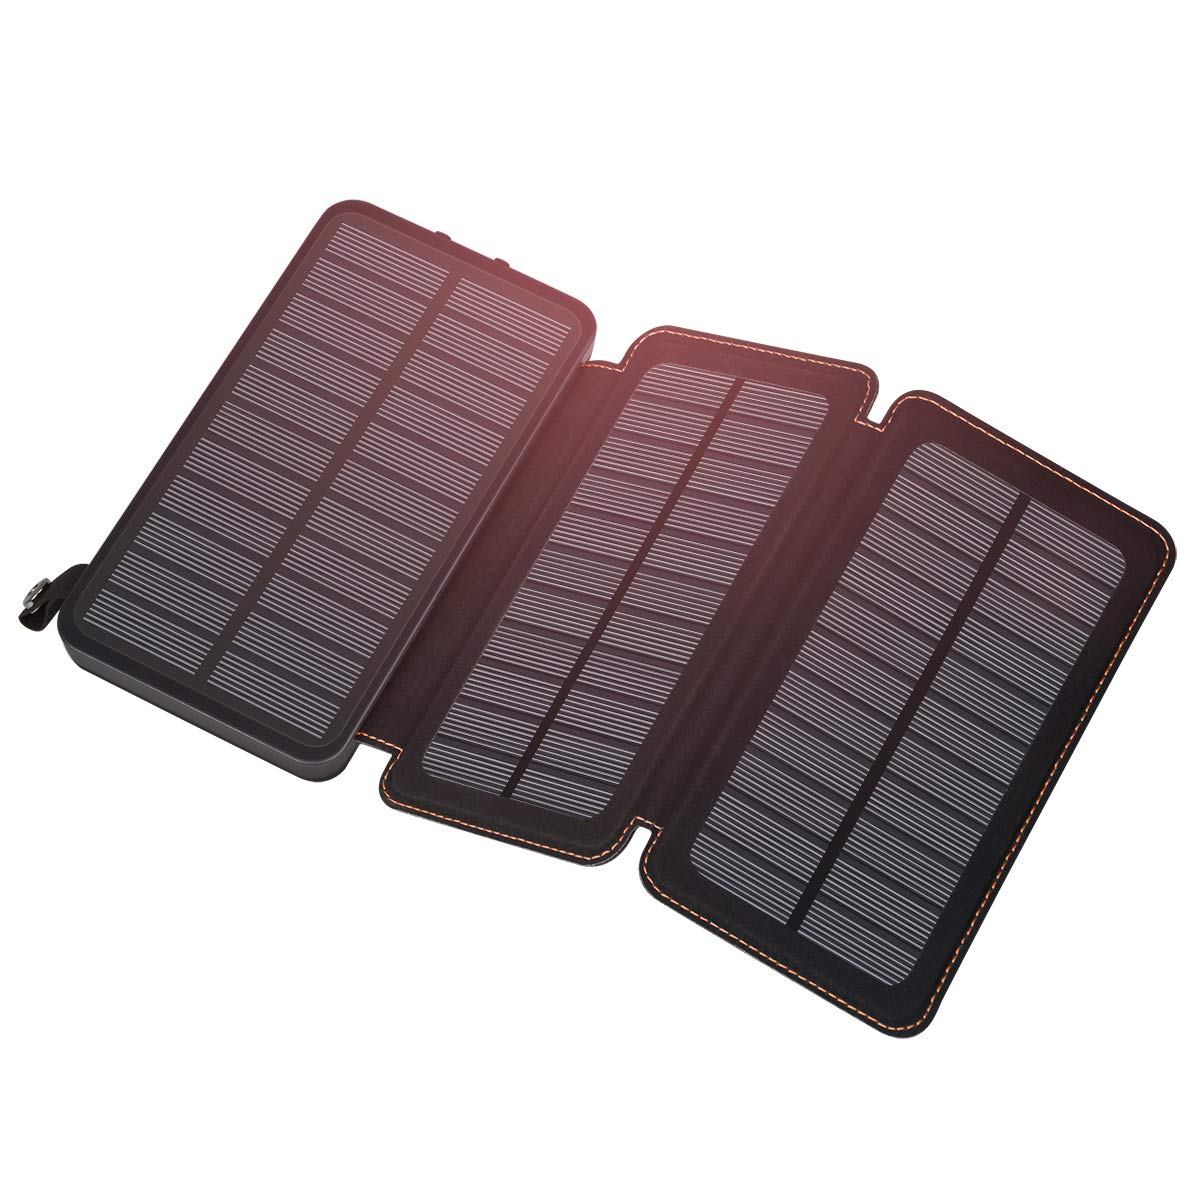 Solar Charger 24000mAh, FEELLE Outdoor Portable Solar Power Bank with Dual 2.1A USB Ports Fast Charge External Battery Phone Chargers Compatible Smart Phones, Tablets - 88Wh